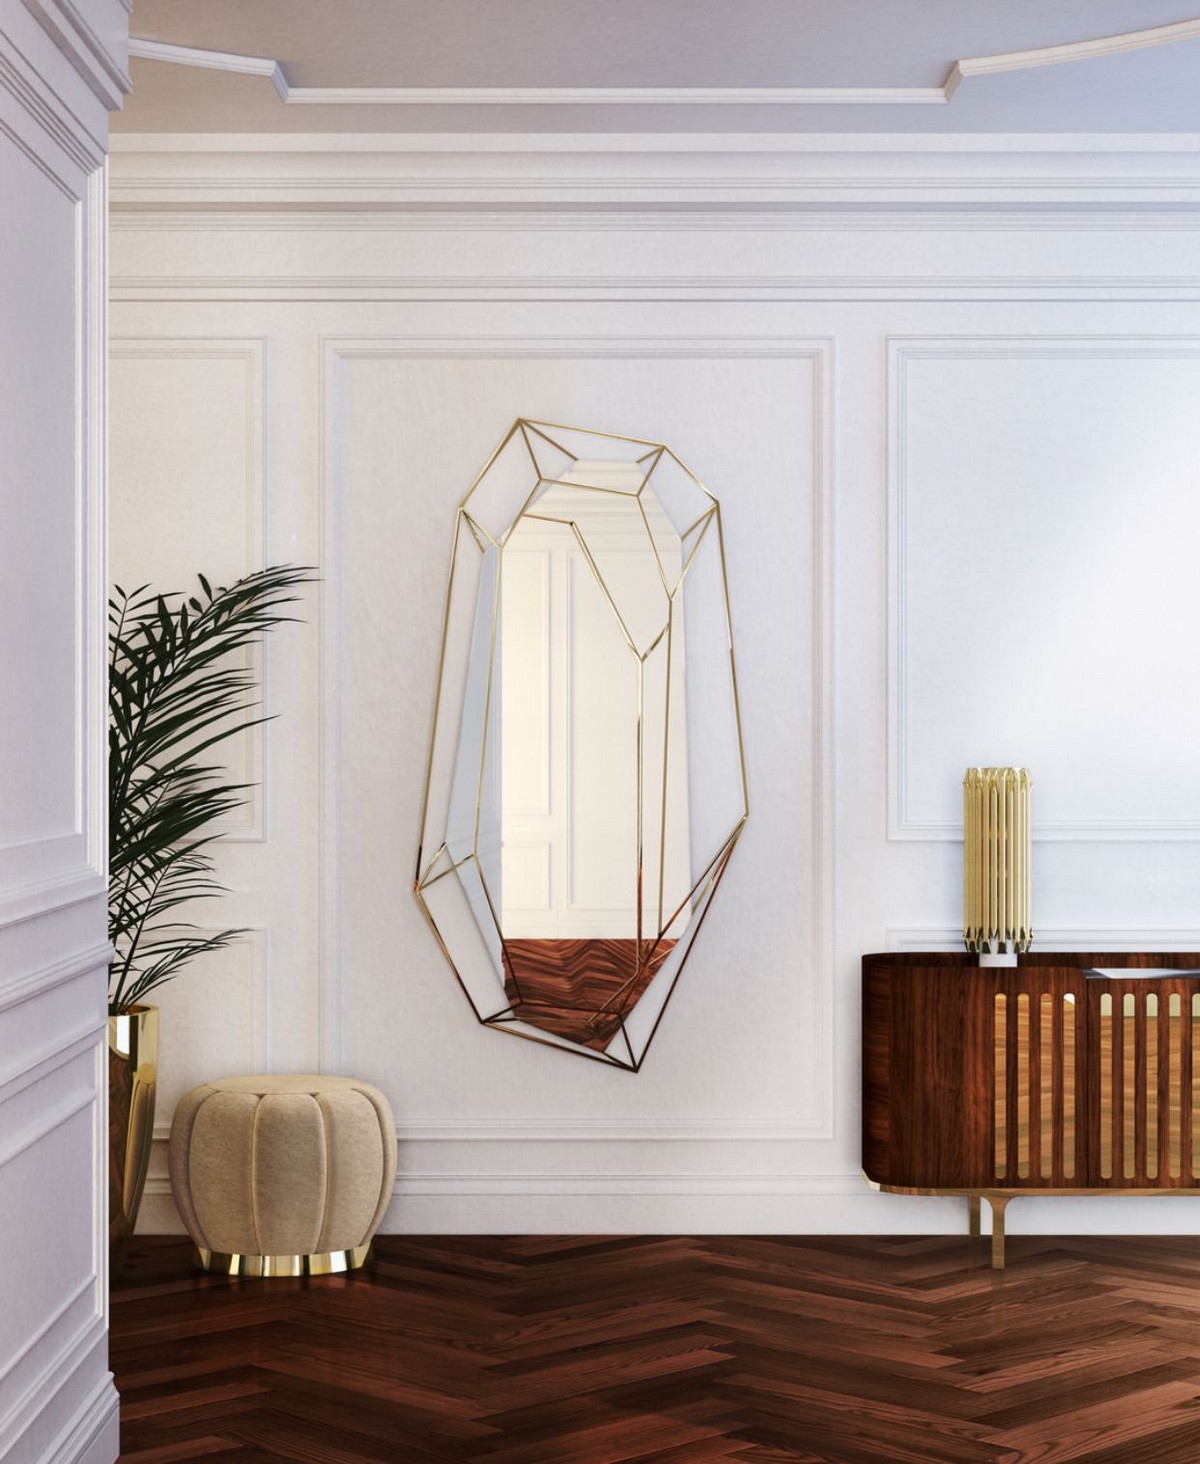 Maison et Objet 2019 Maison et Objet 2019: Luxury Mirror Designs by Covet House diamond2